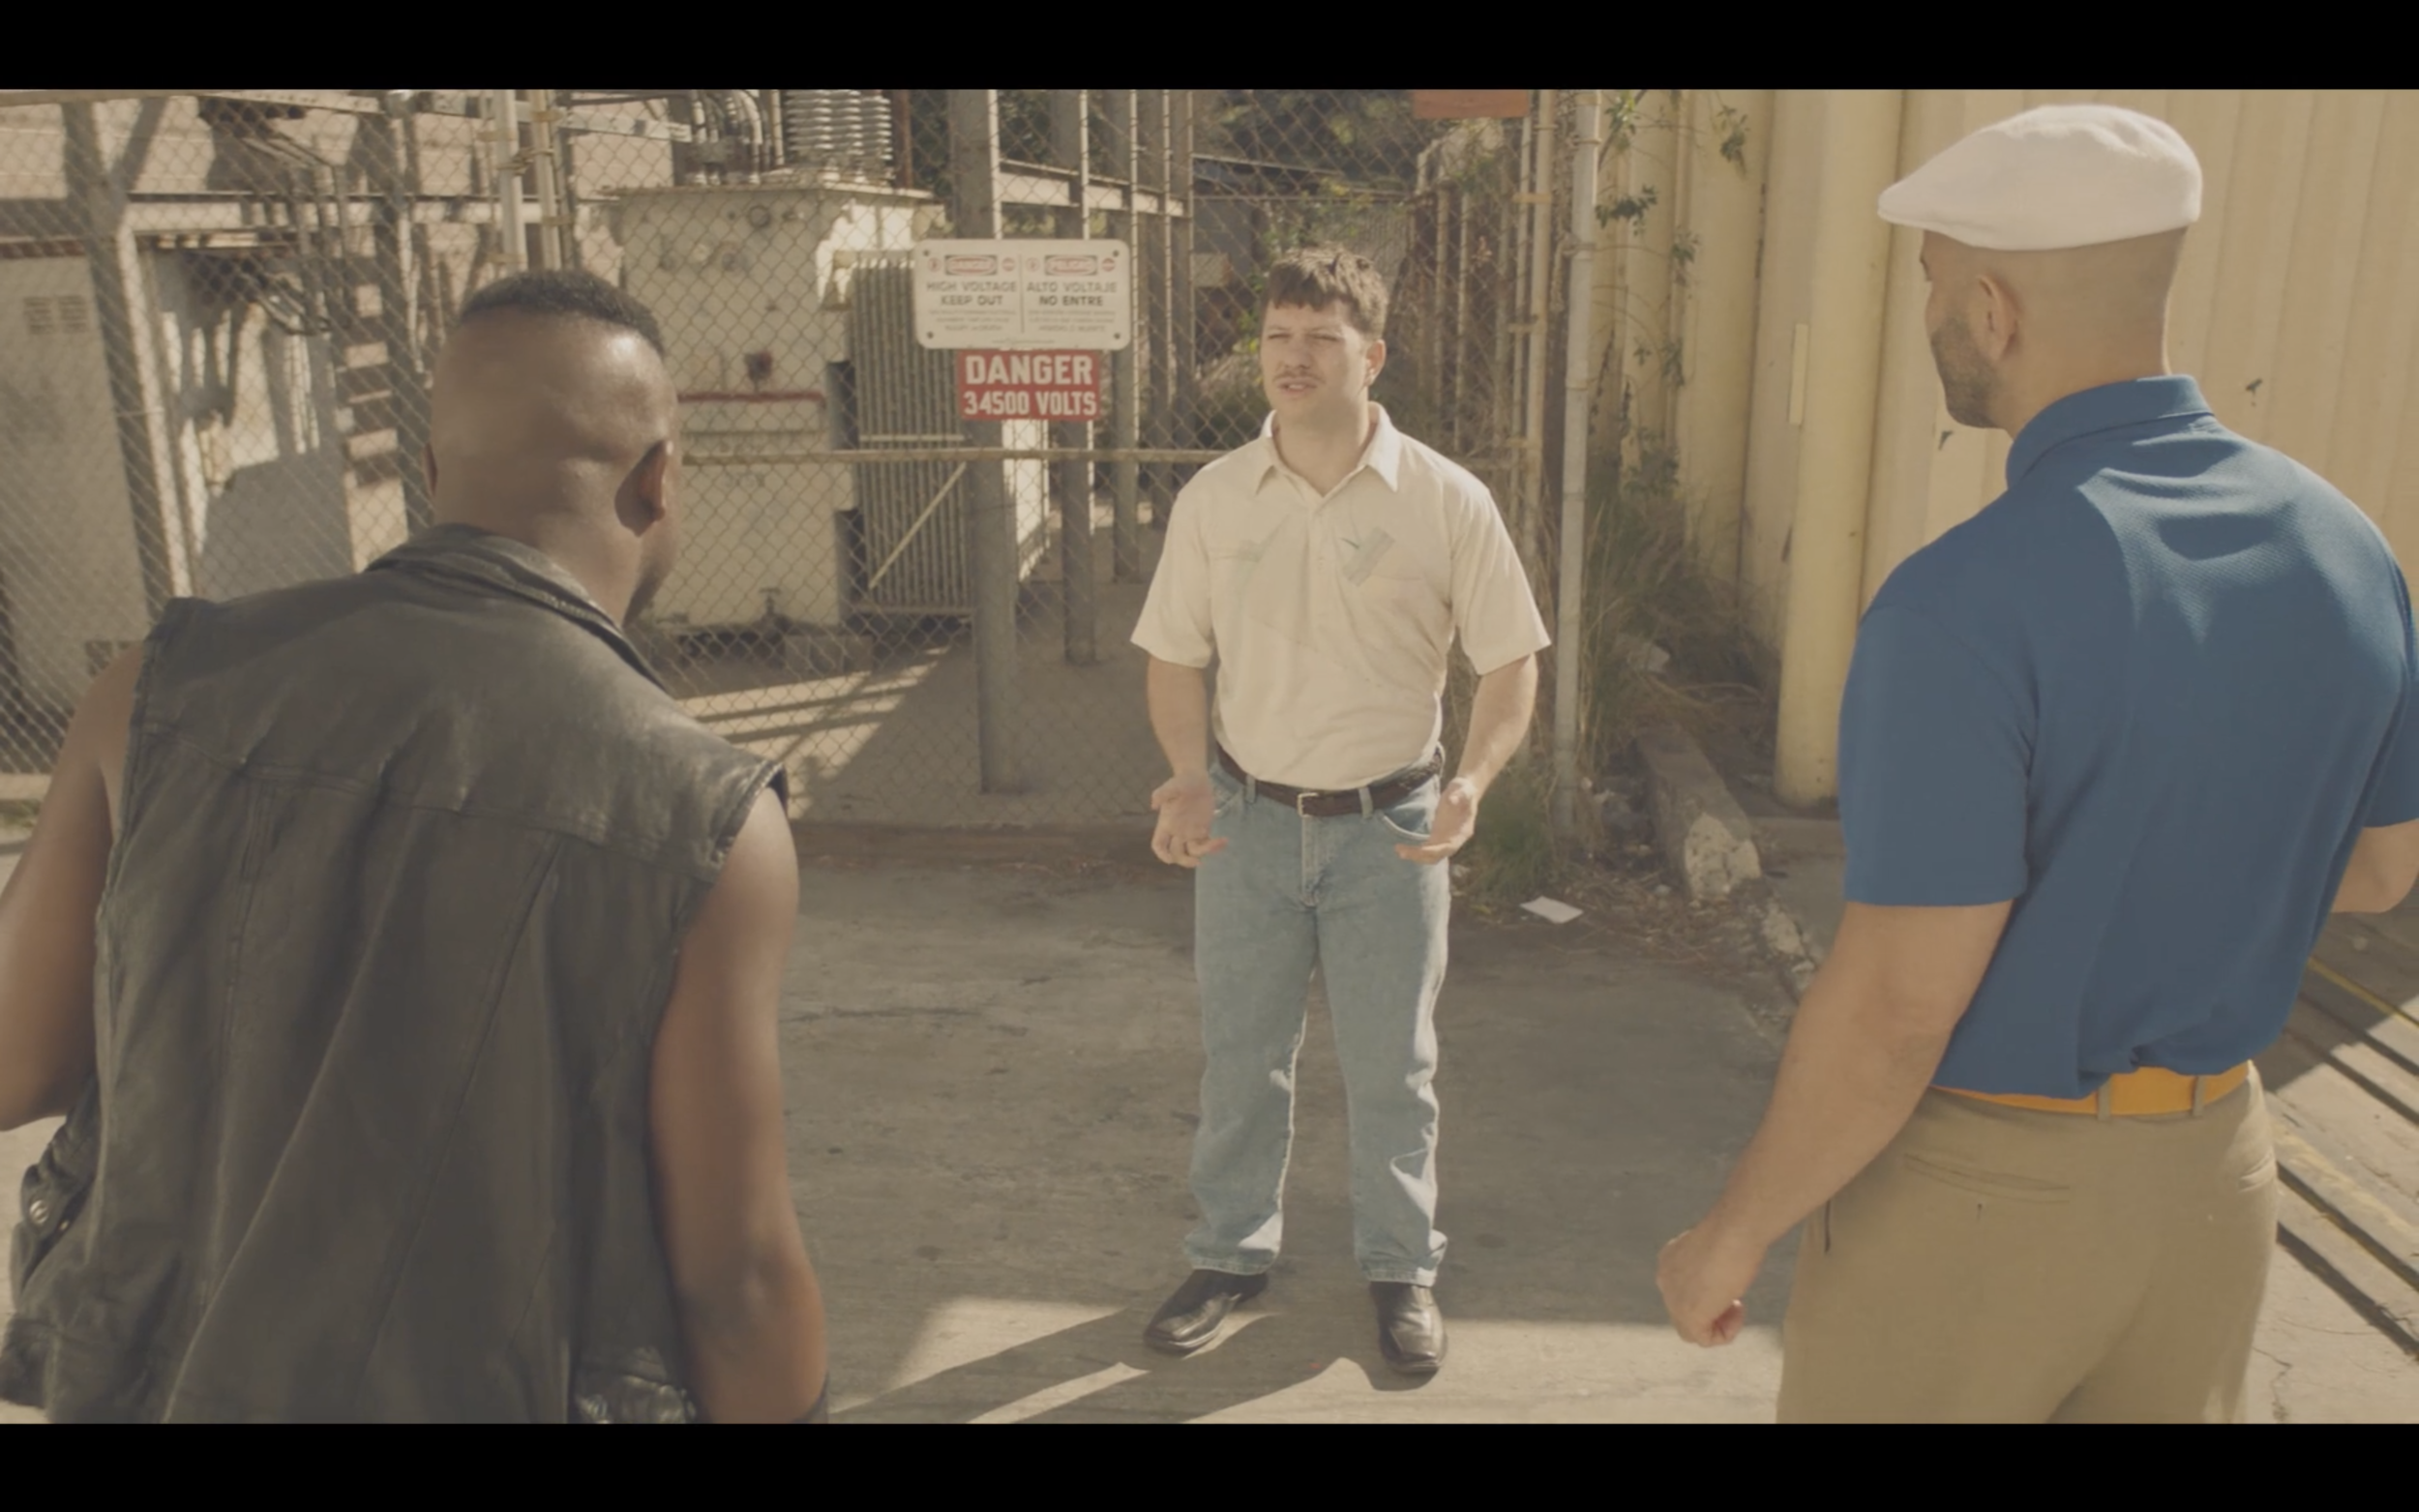 BEEFCAKES - SHORT FILM - Directed by Andrew Madsen Jacobson